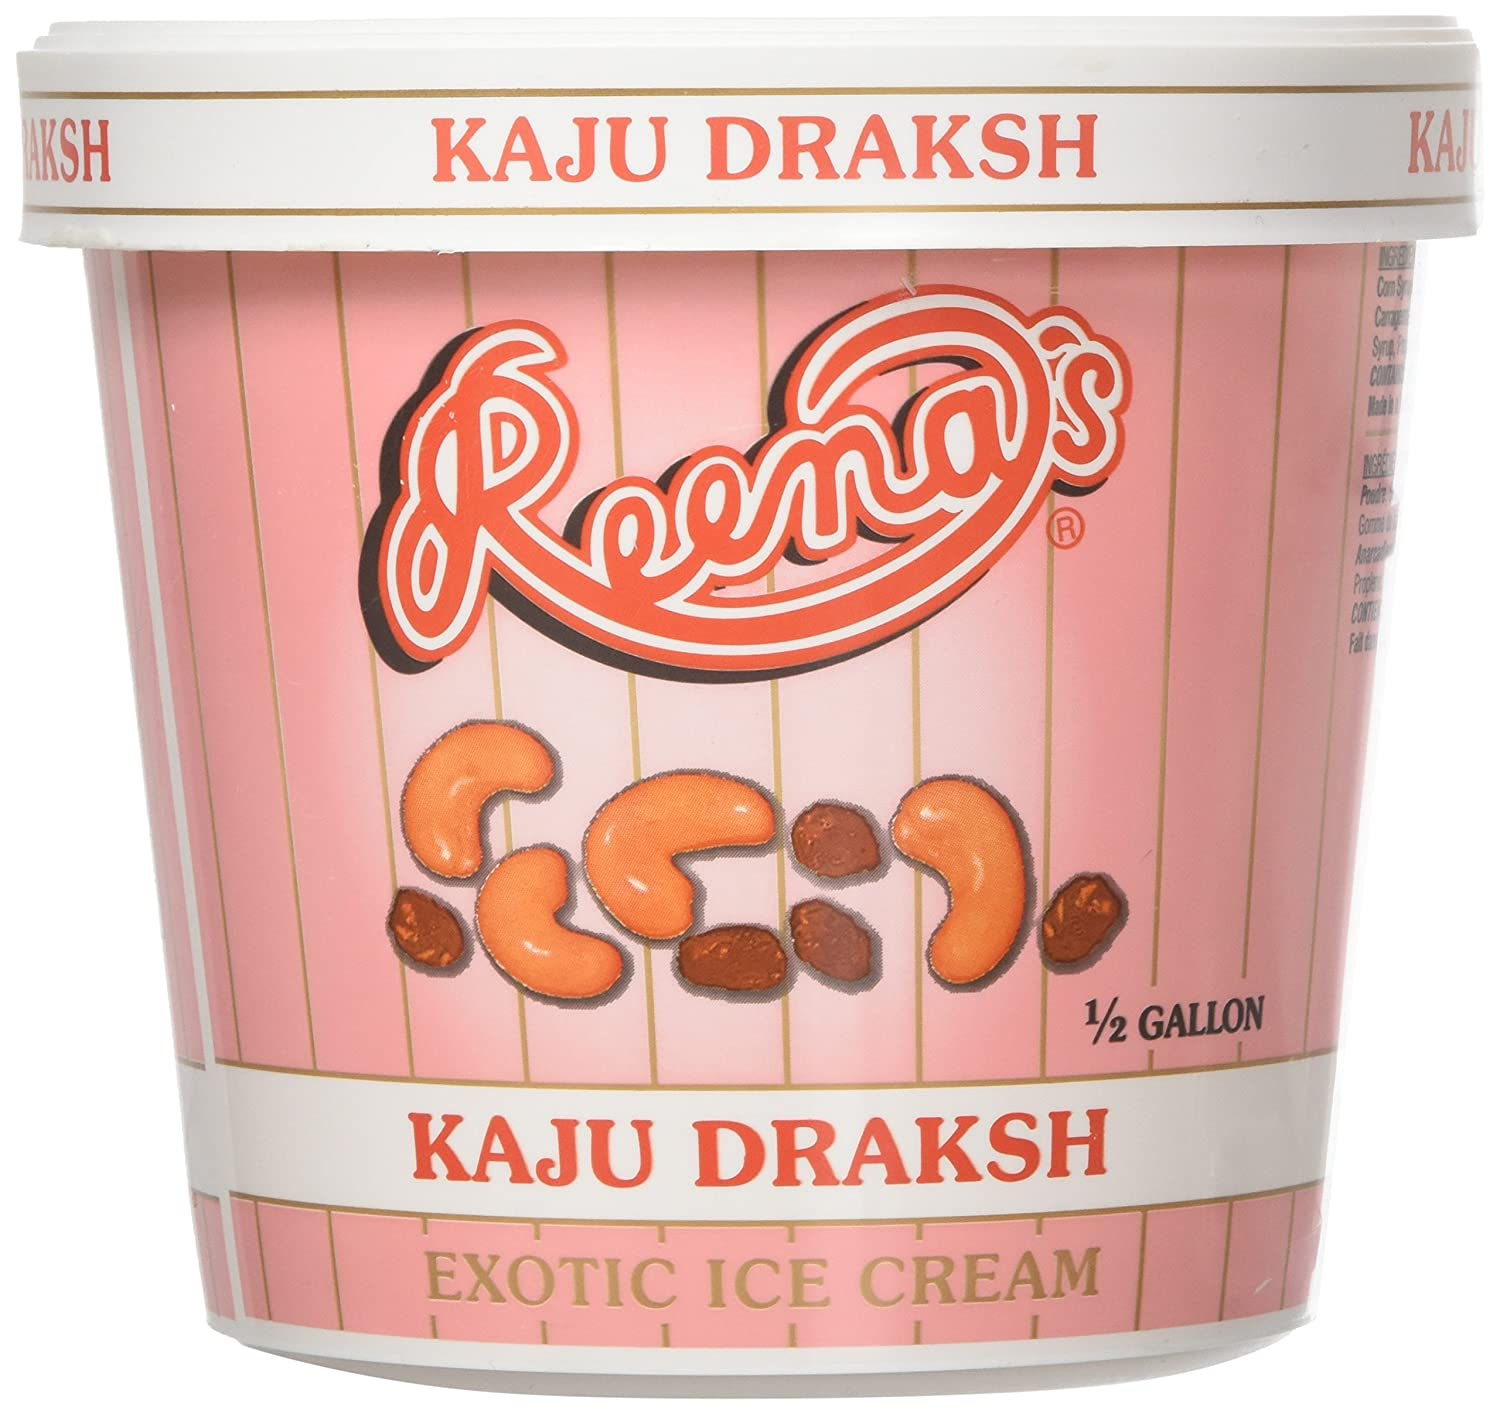 Deep, Kaju Draksh Ice Cream, 1/2 Gallon(gl): Amazon.com: Grocery & Gourmet Food